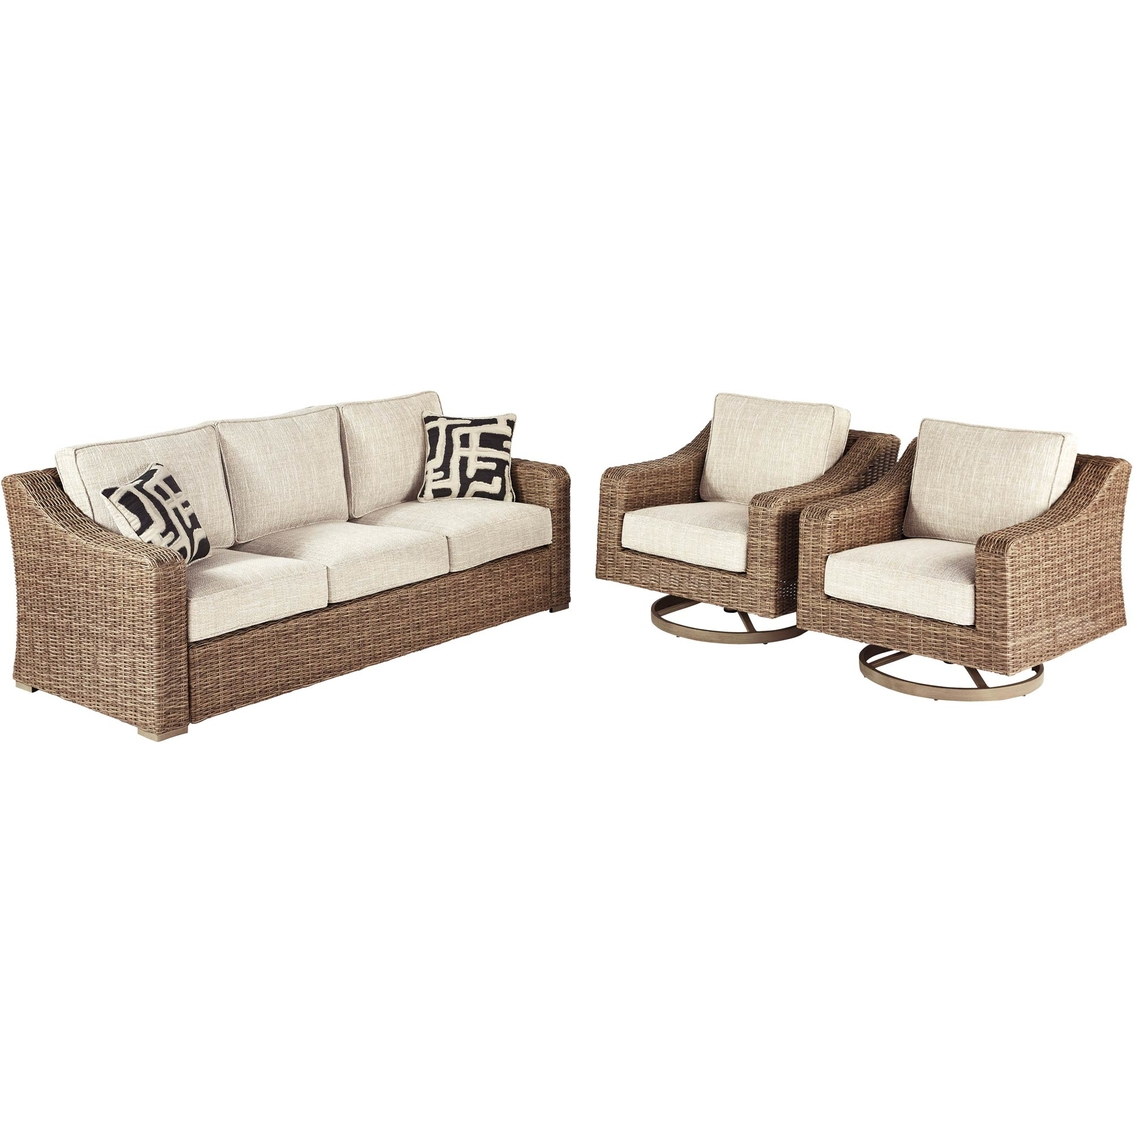 ashley beachcroft sofa and two swivel lounge chairs set patio sets patio garden garage shop the exchange